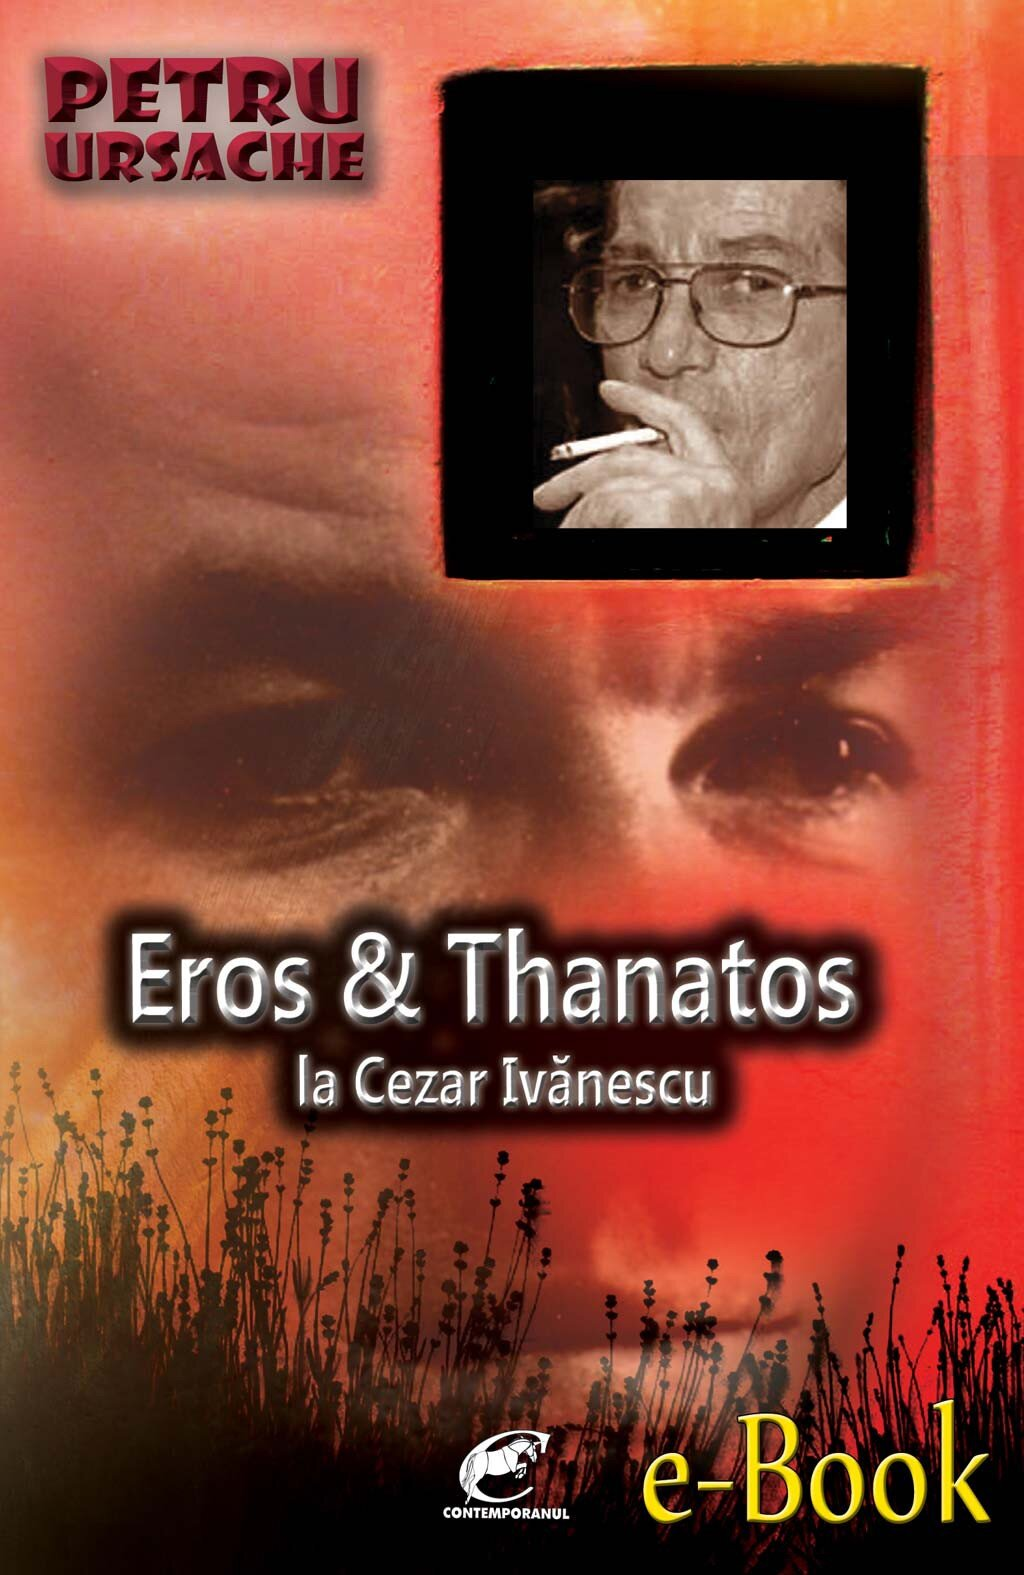 Eros si Thanatos la Cezar Ivanescu PDF (Download eBook)